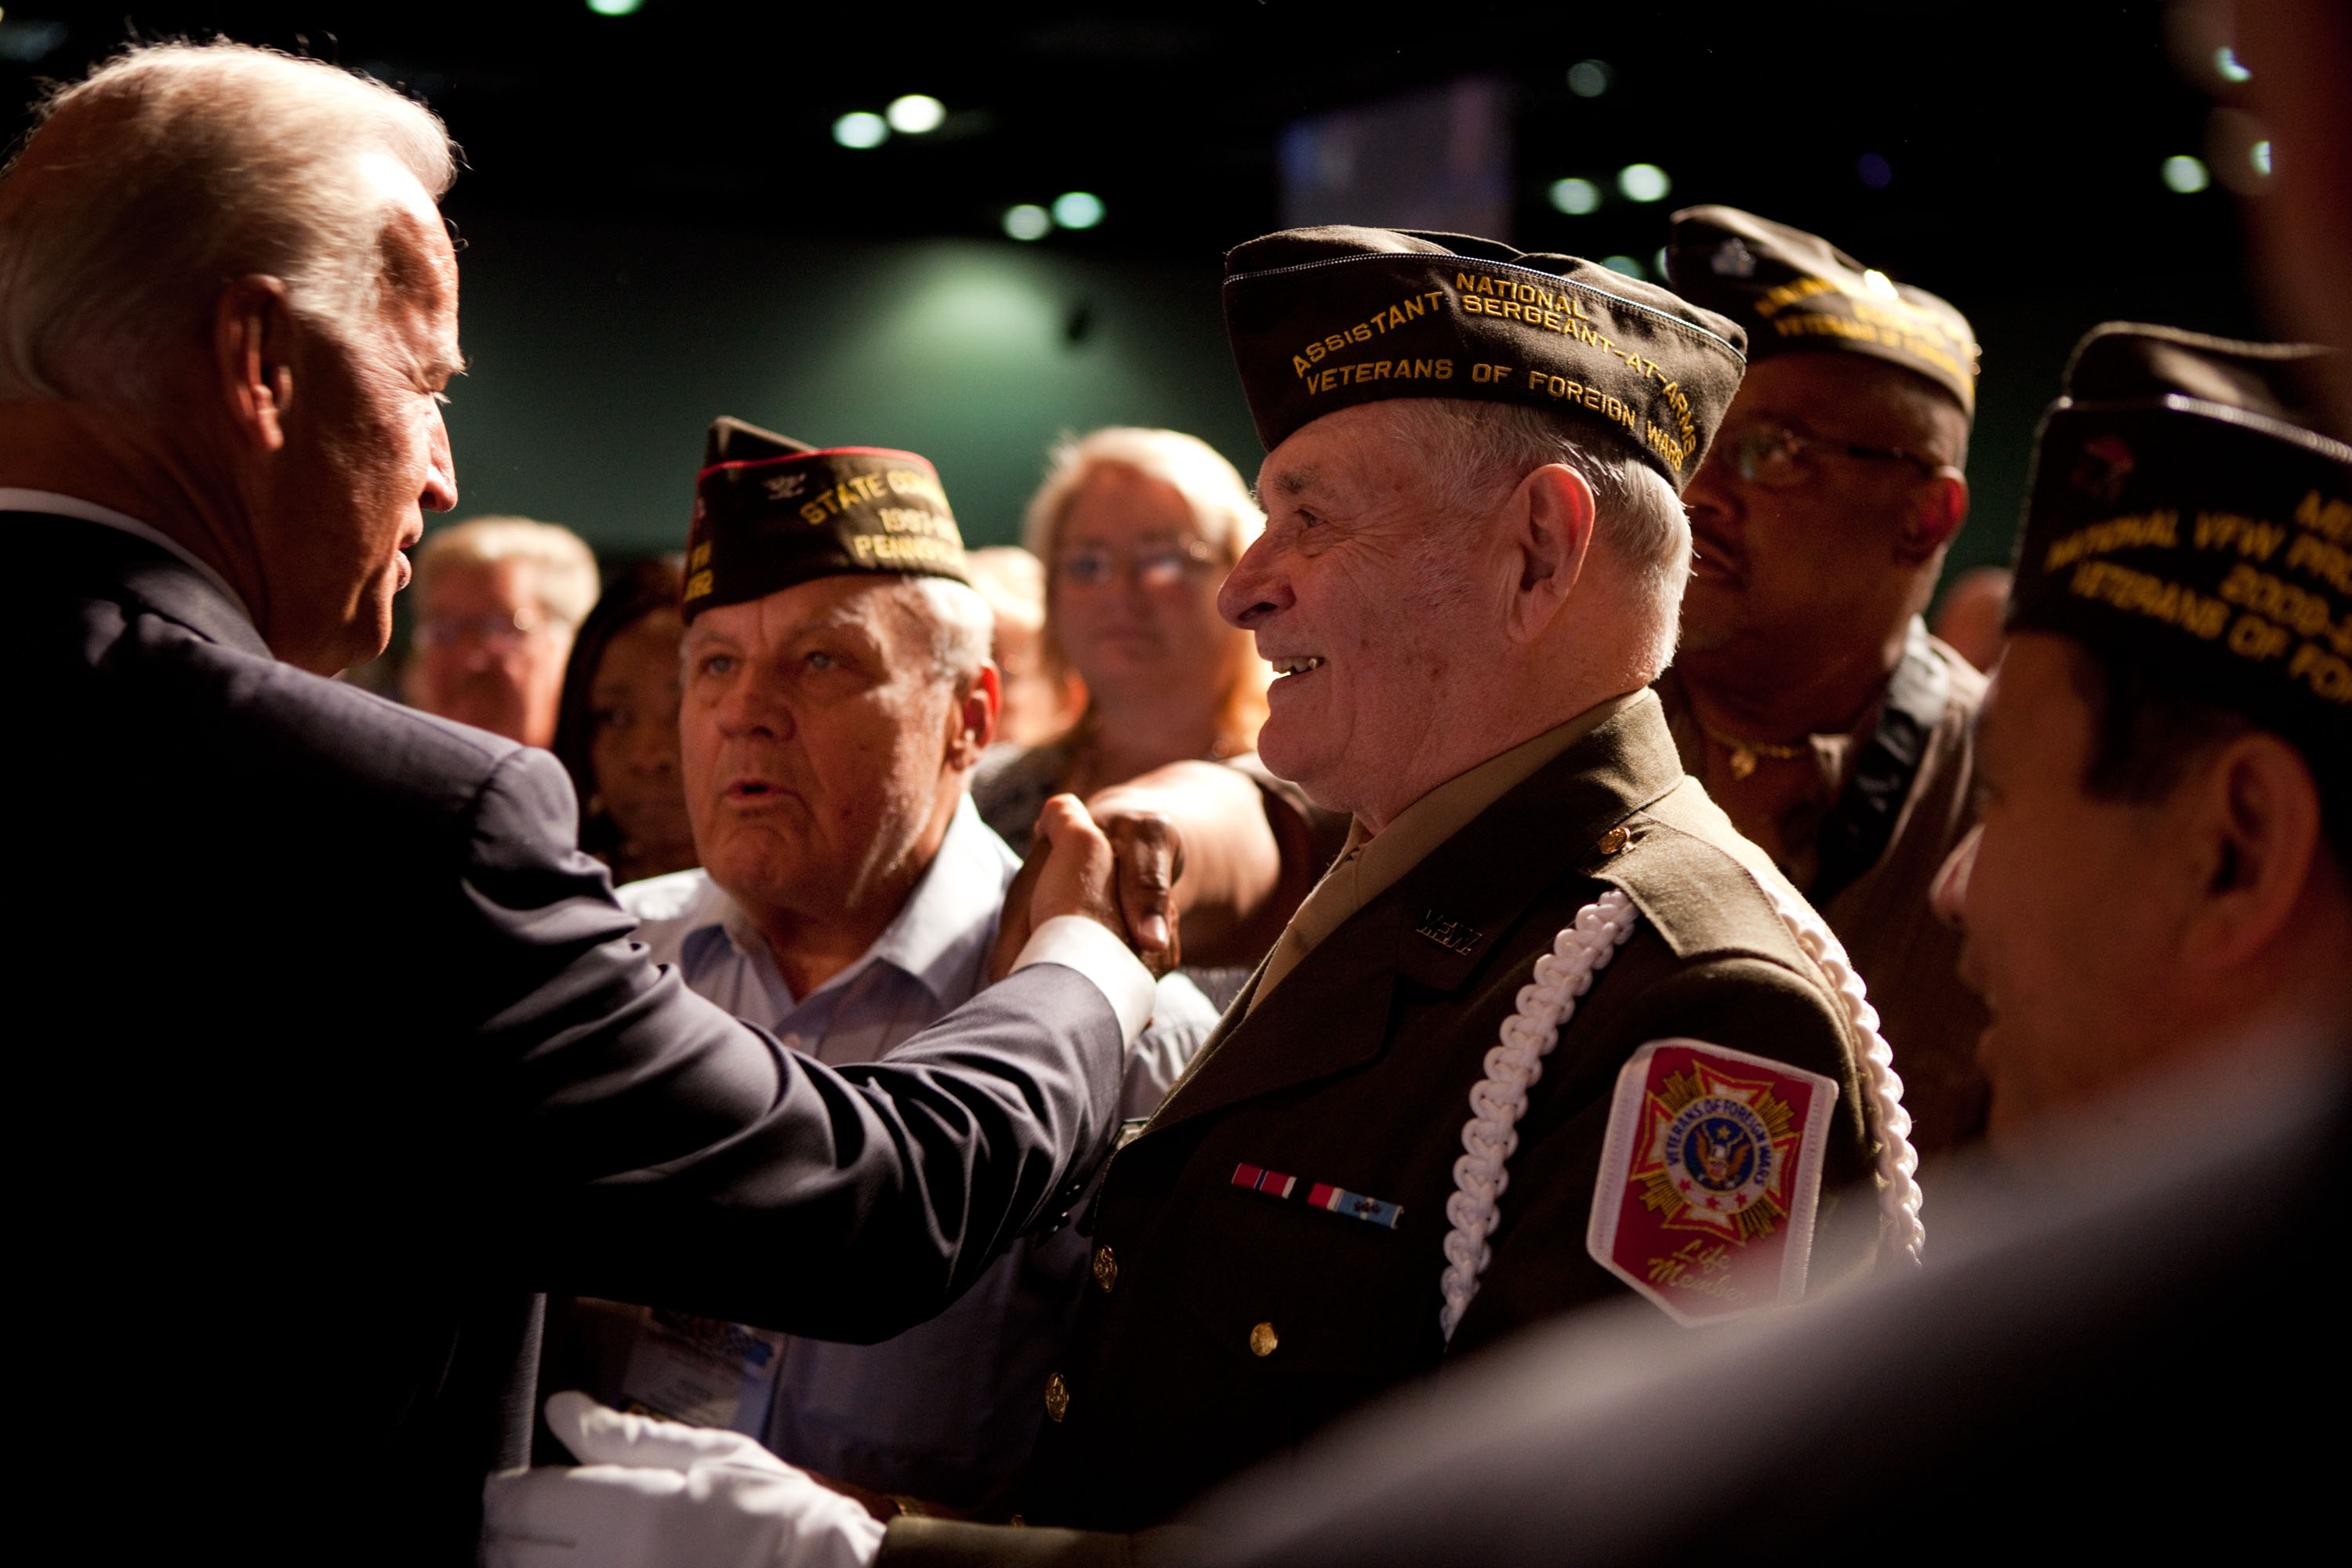 Vice President Joe Biden Shakes Hands at the 111th Veterans of Foreign Wars Convention After Speaking on Iraq